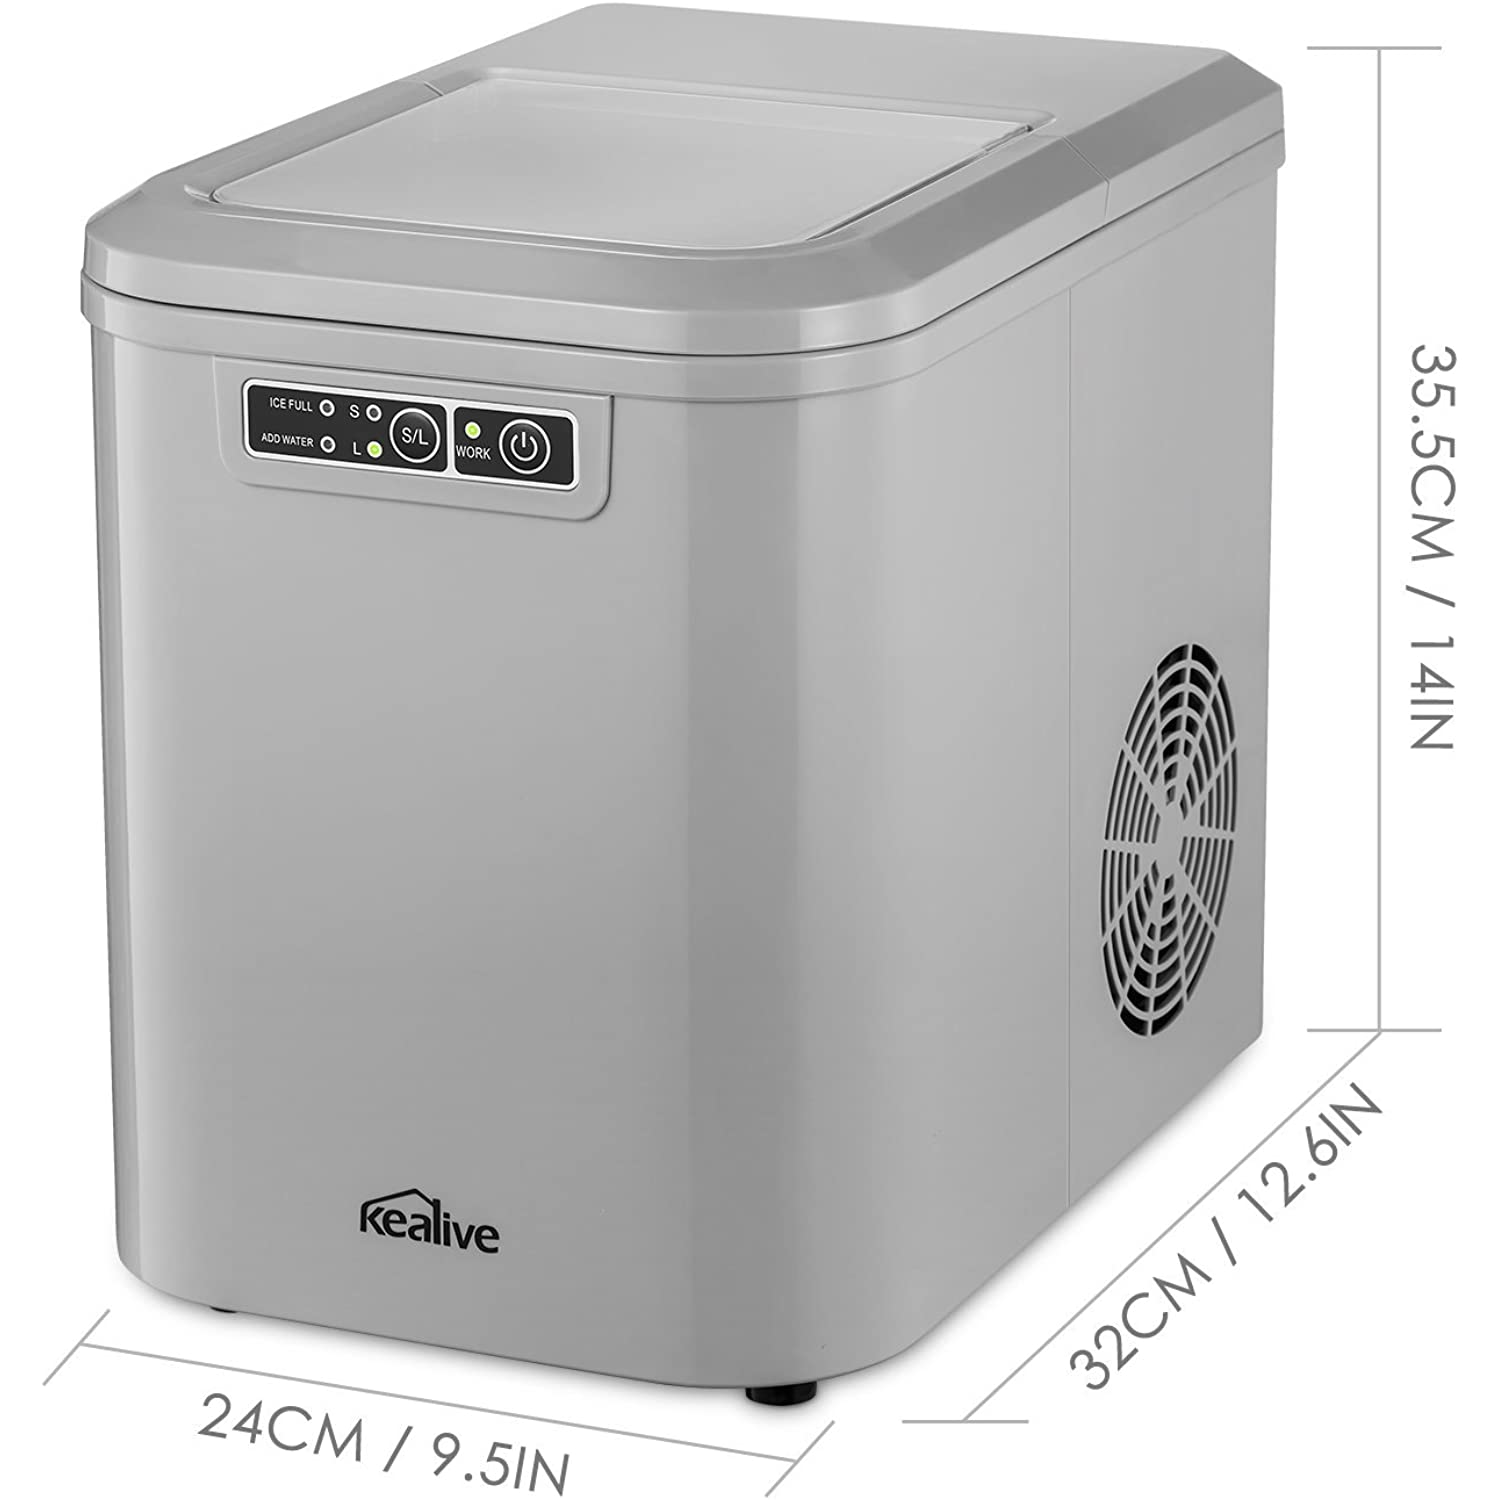 Kealive Icemaker